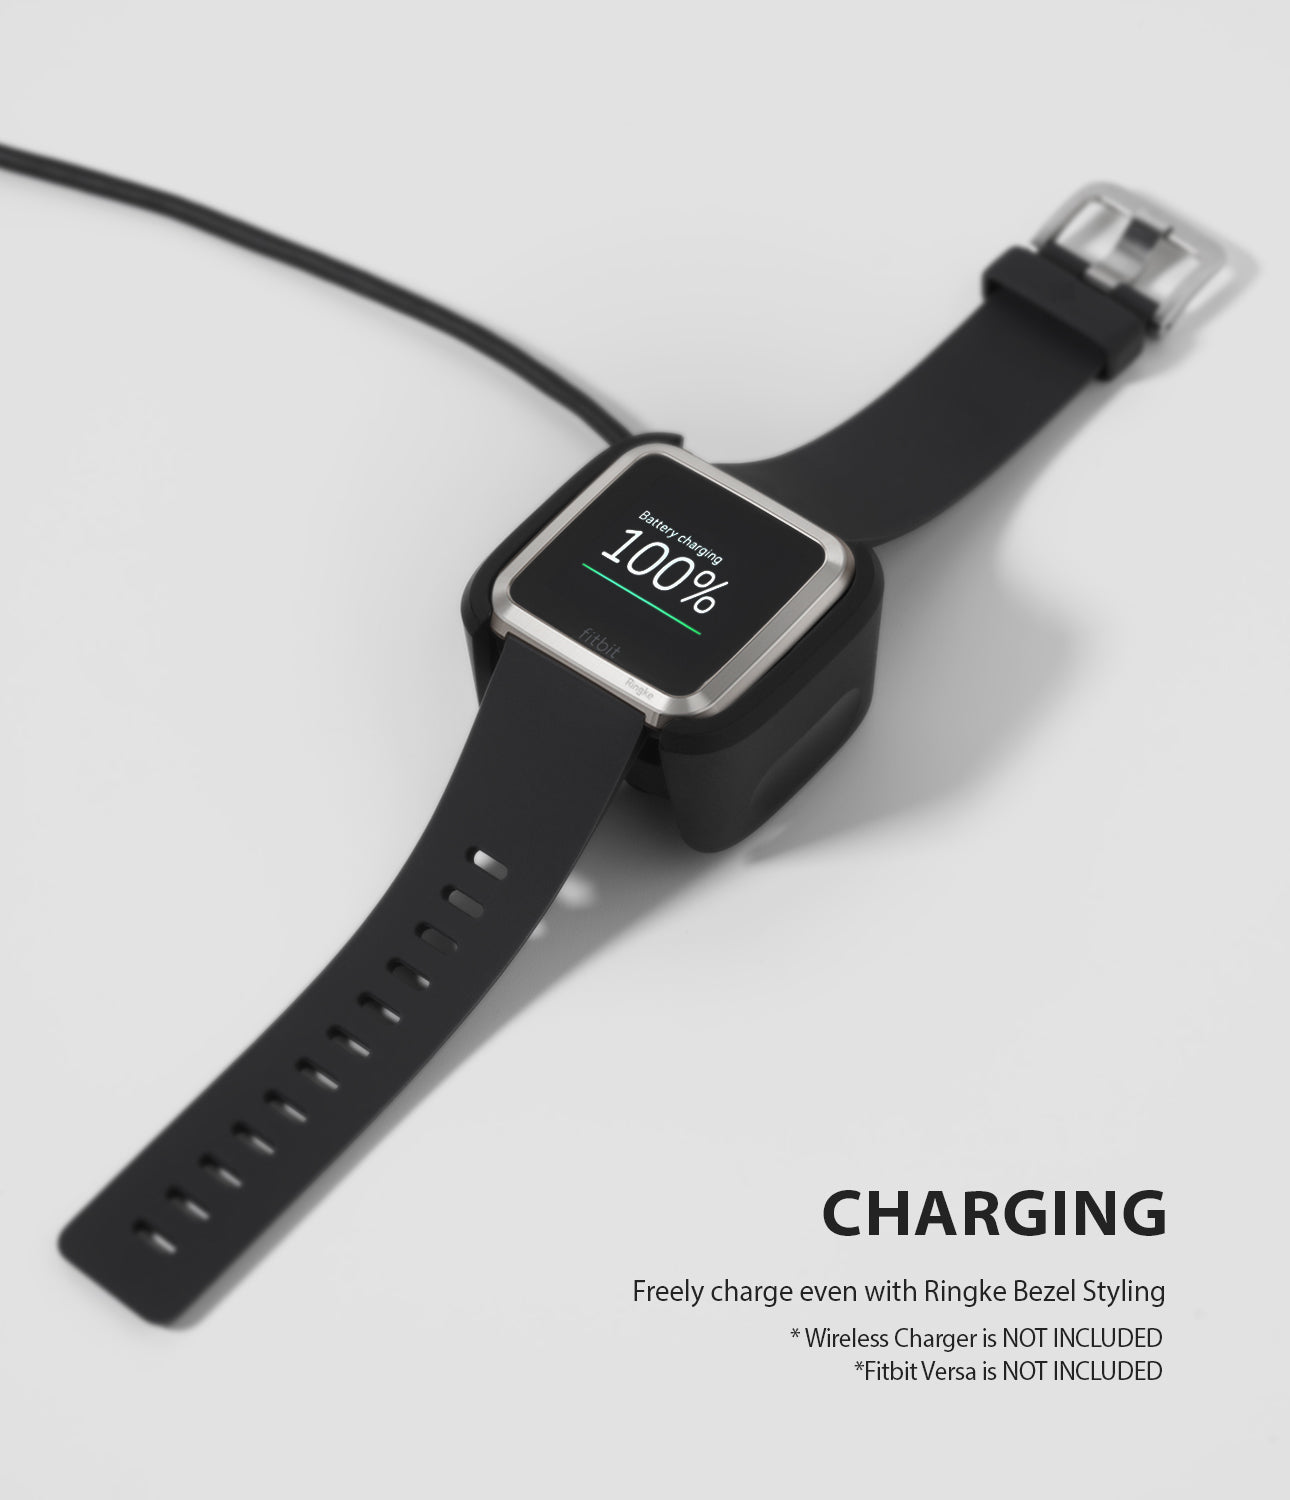 Ringke Bezel Styling Designed for Fitbit Versa Case Cover, Silver- FW-V-09, wireless charging compatible